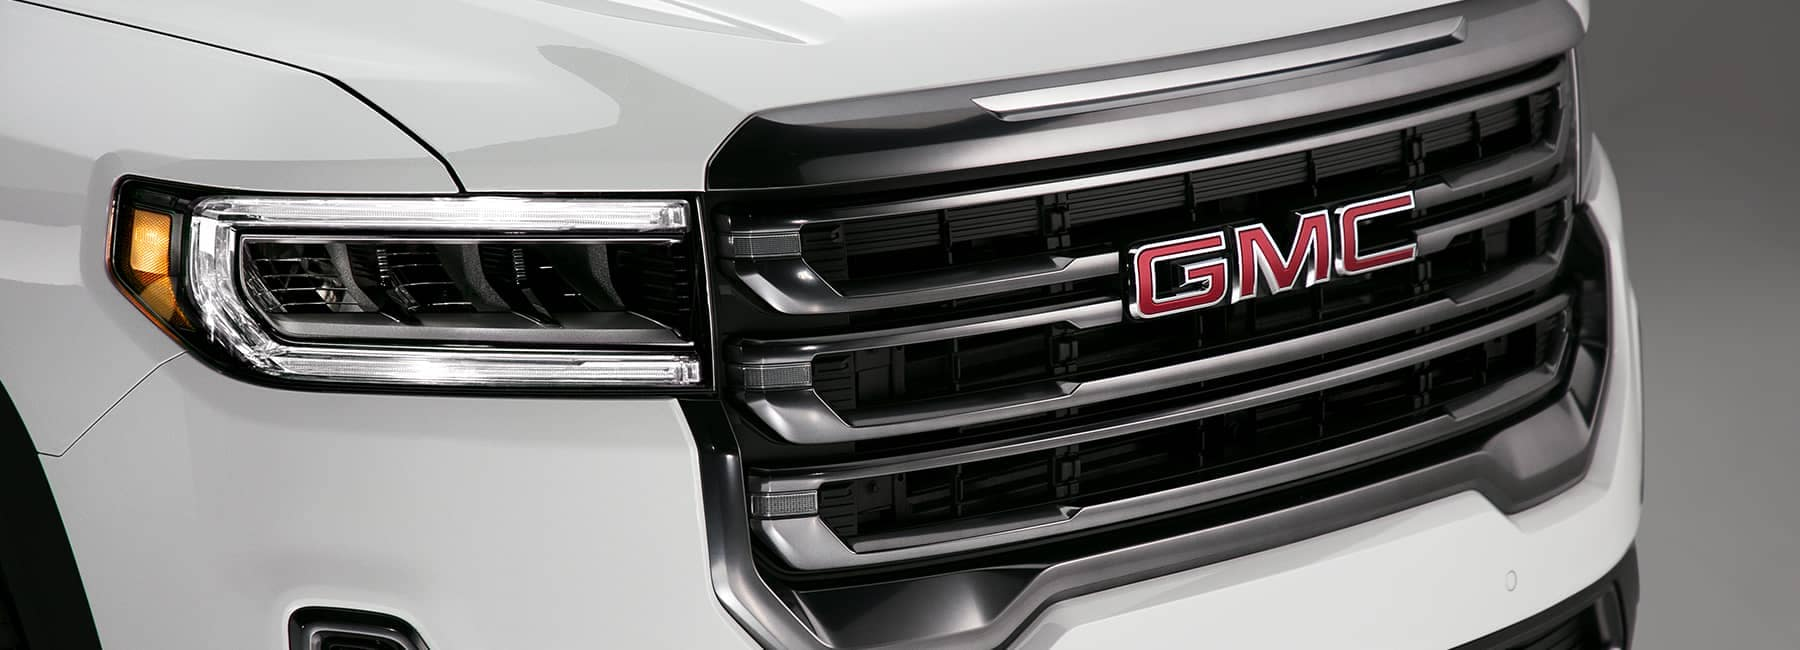 White 2020 GMC Acadia Front Grille